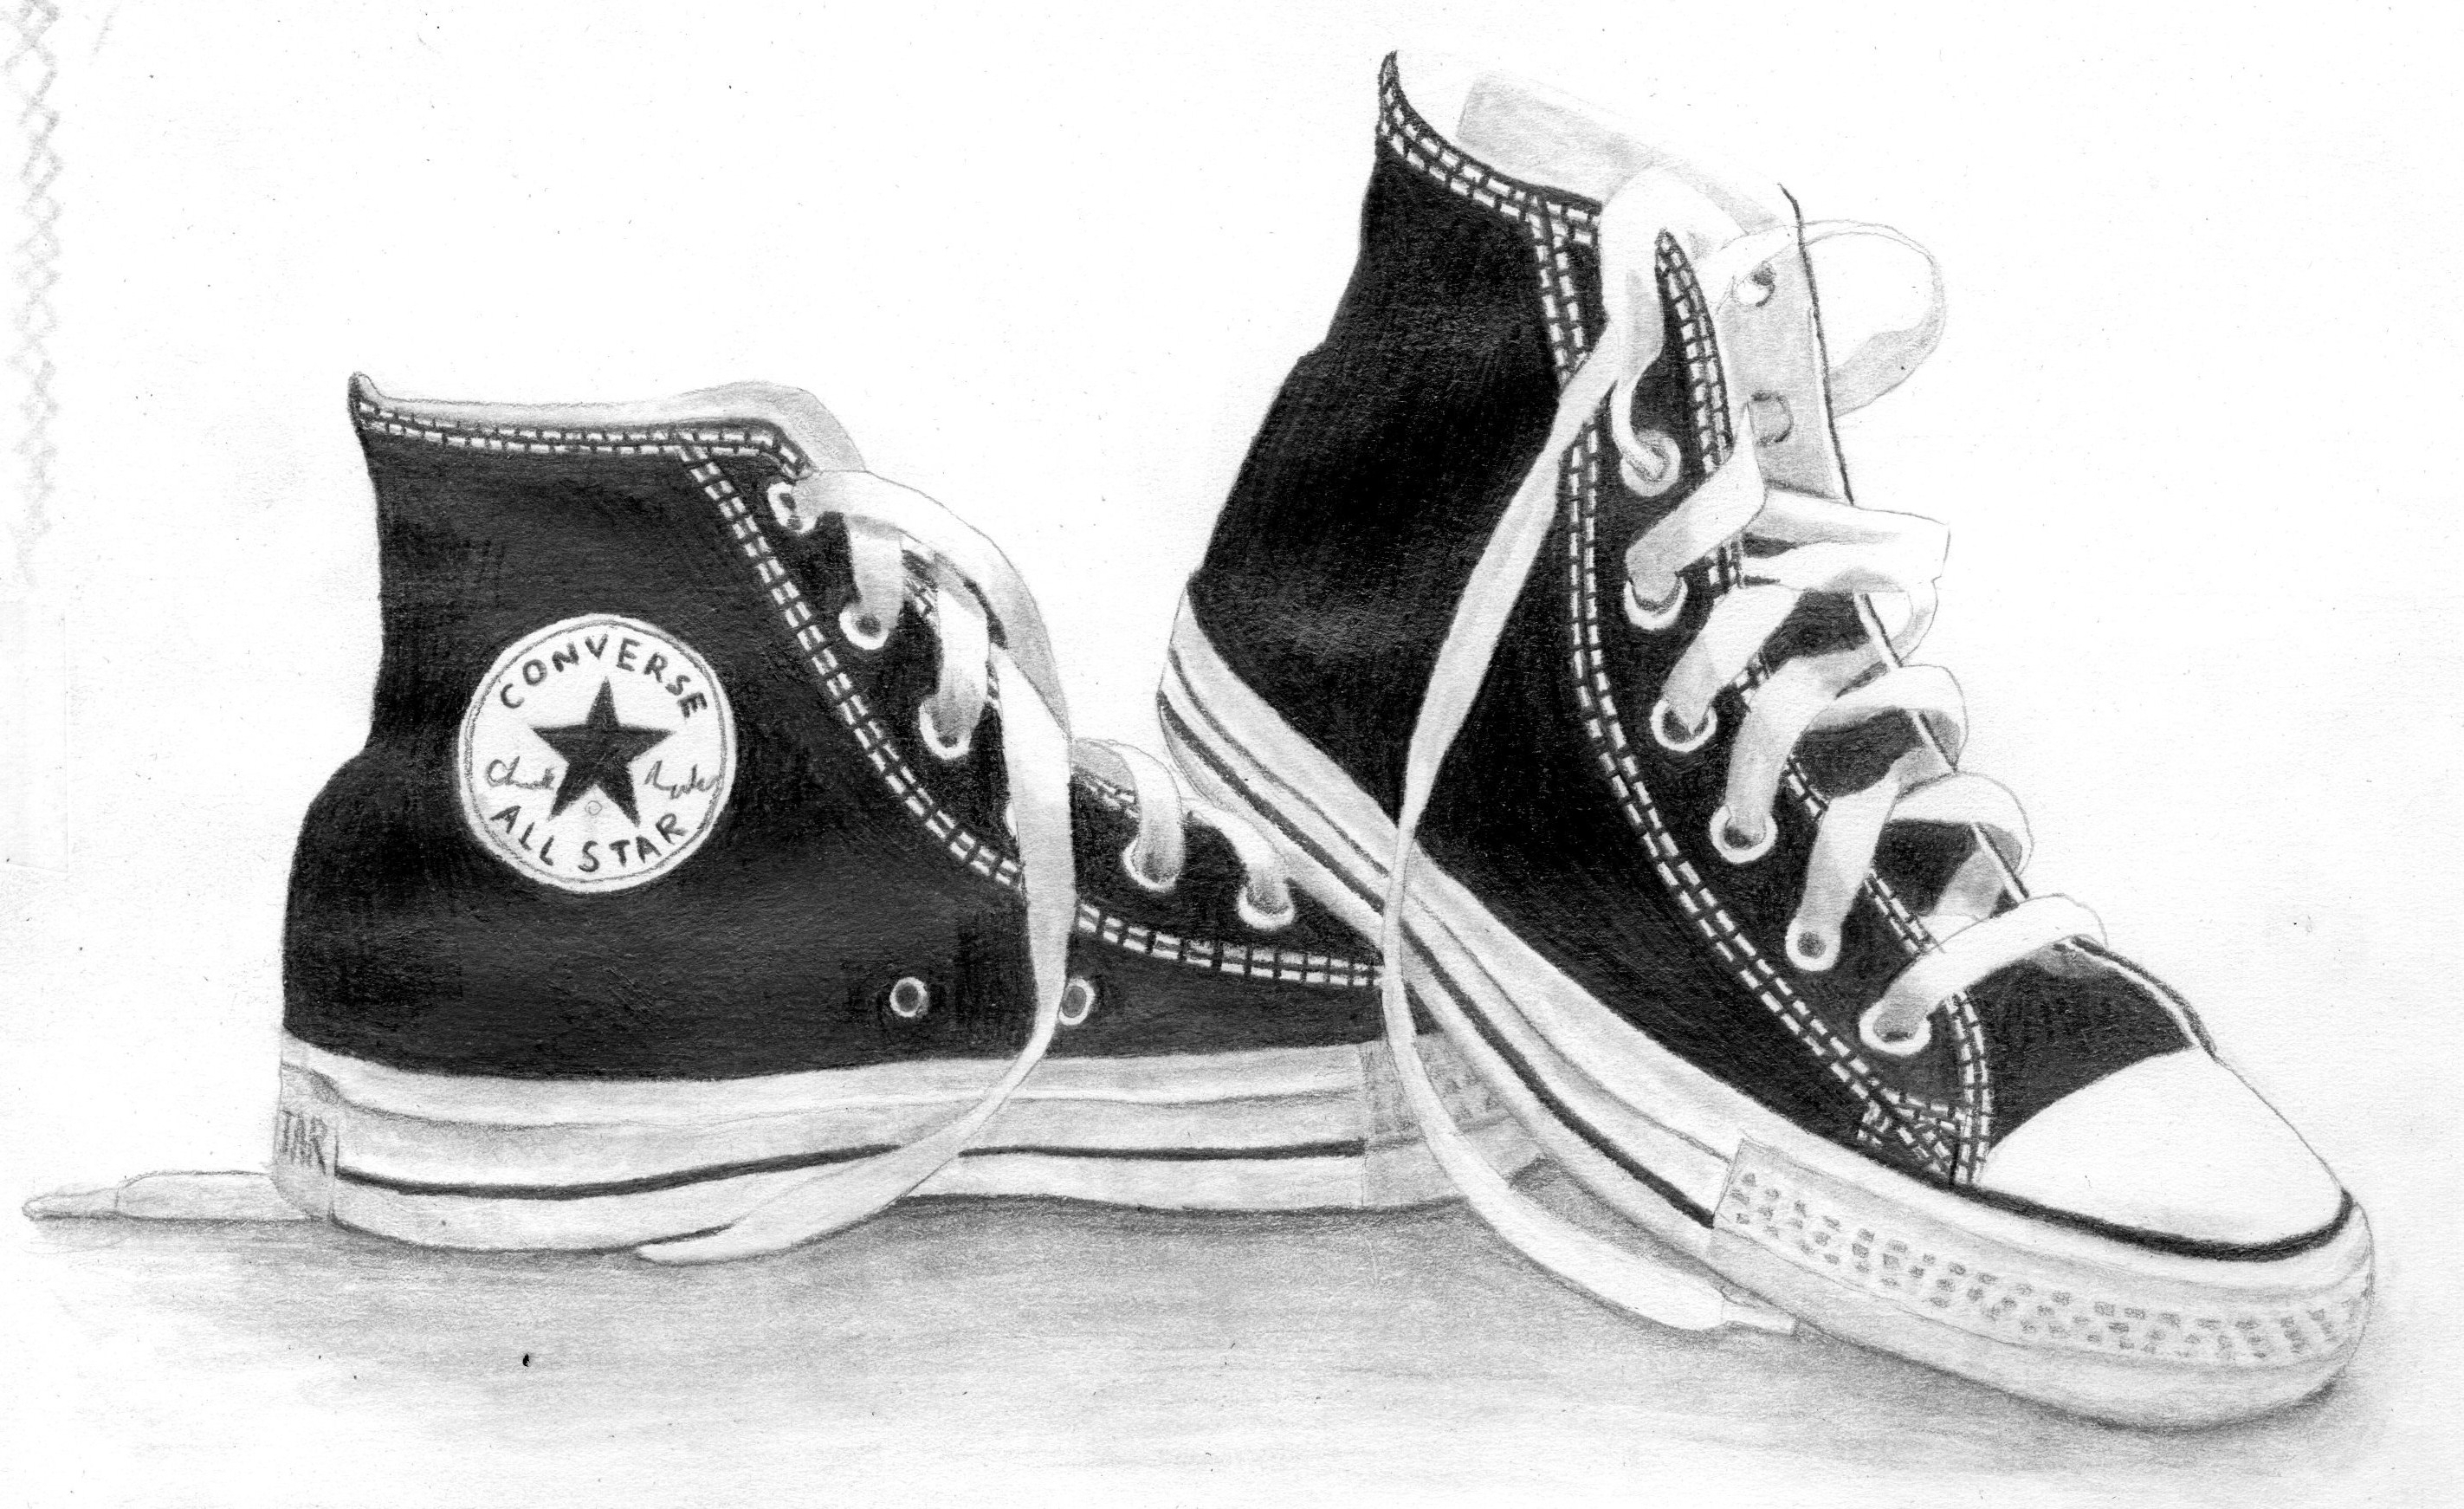 25a29f17289 Free photo  Old Converse Shoes - Shoes